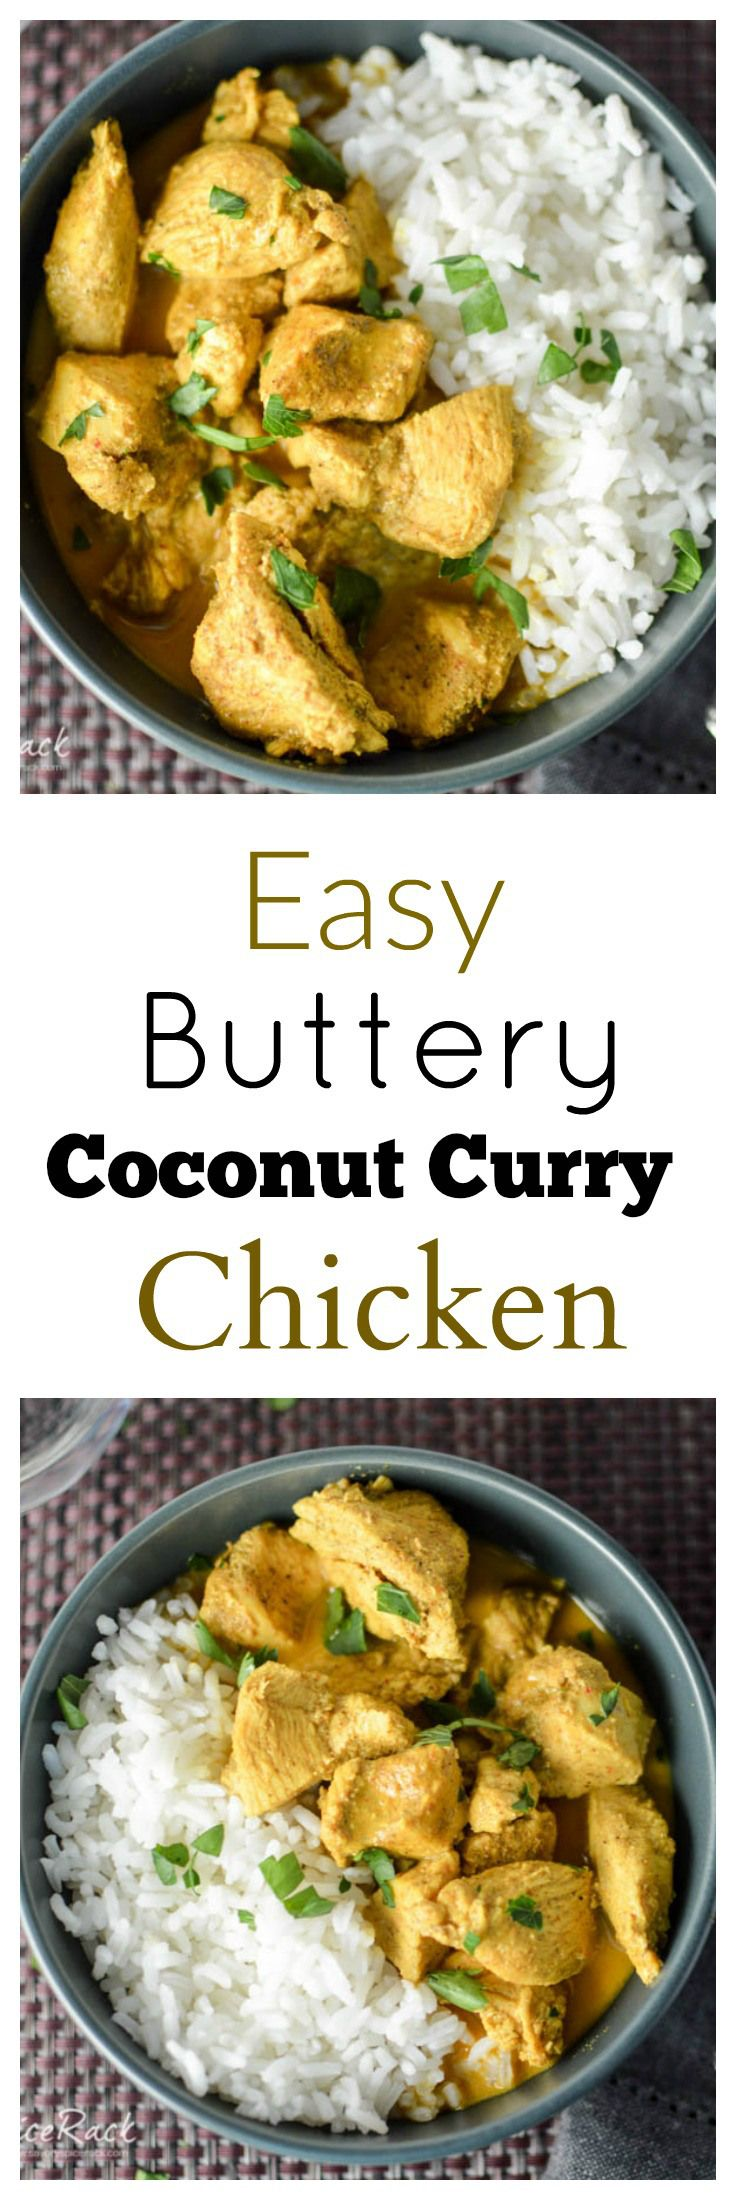 Easy Coconut Curry Chicken